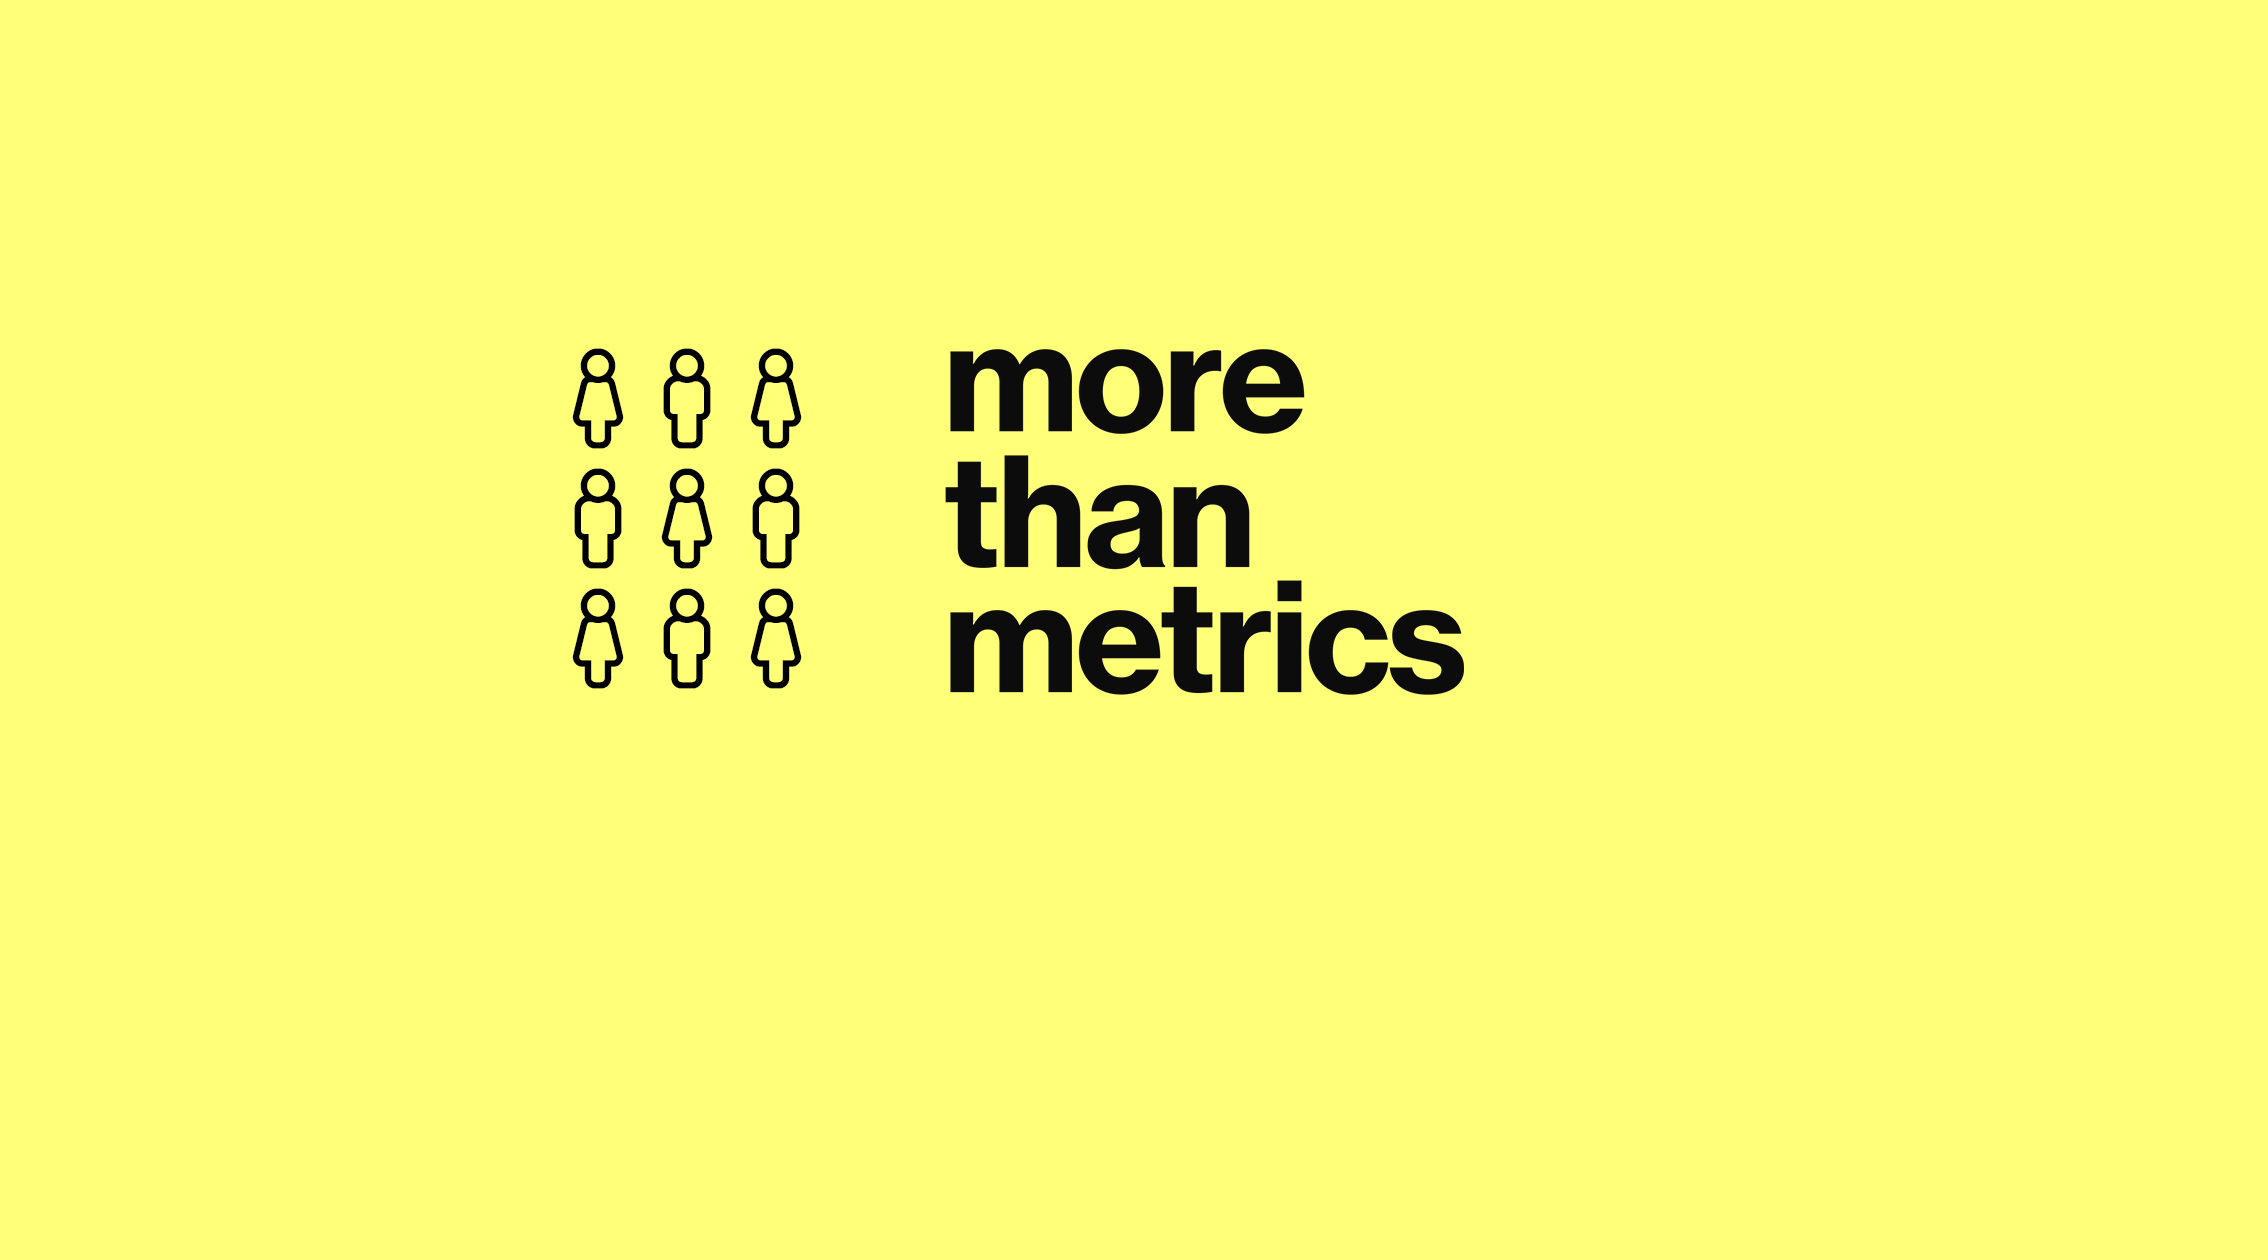 icons of people and the company logo of more than metrics on a yellow background